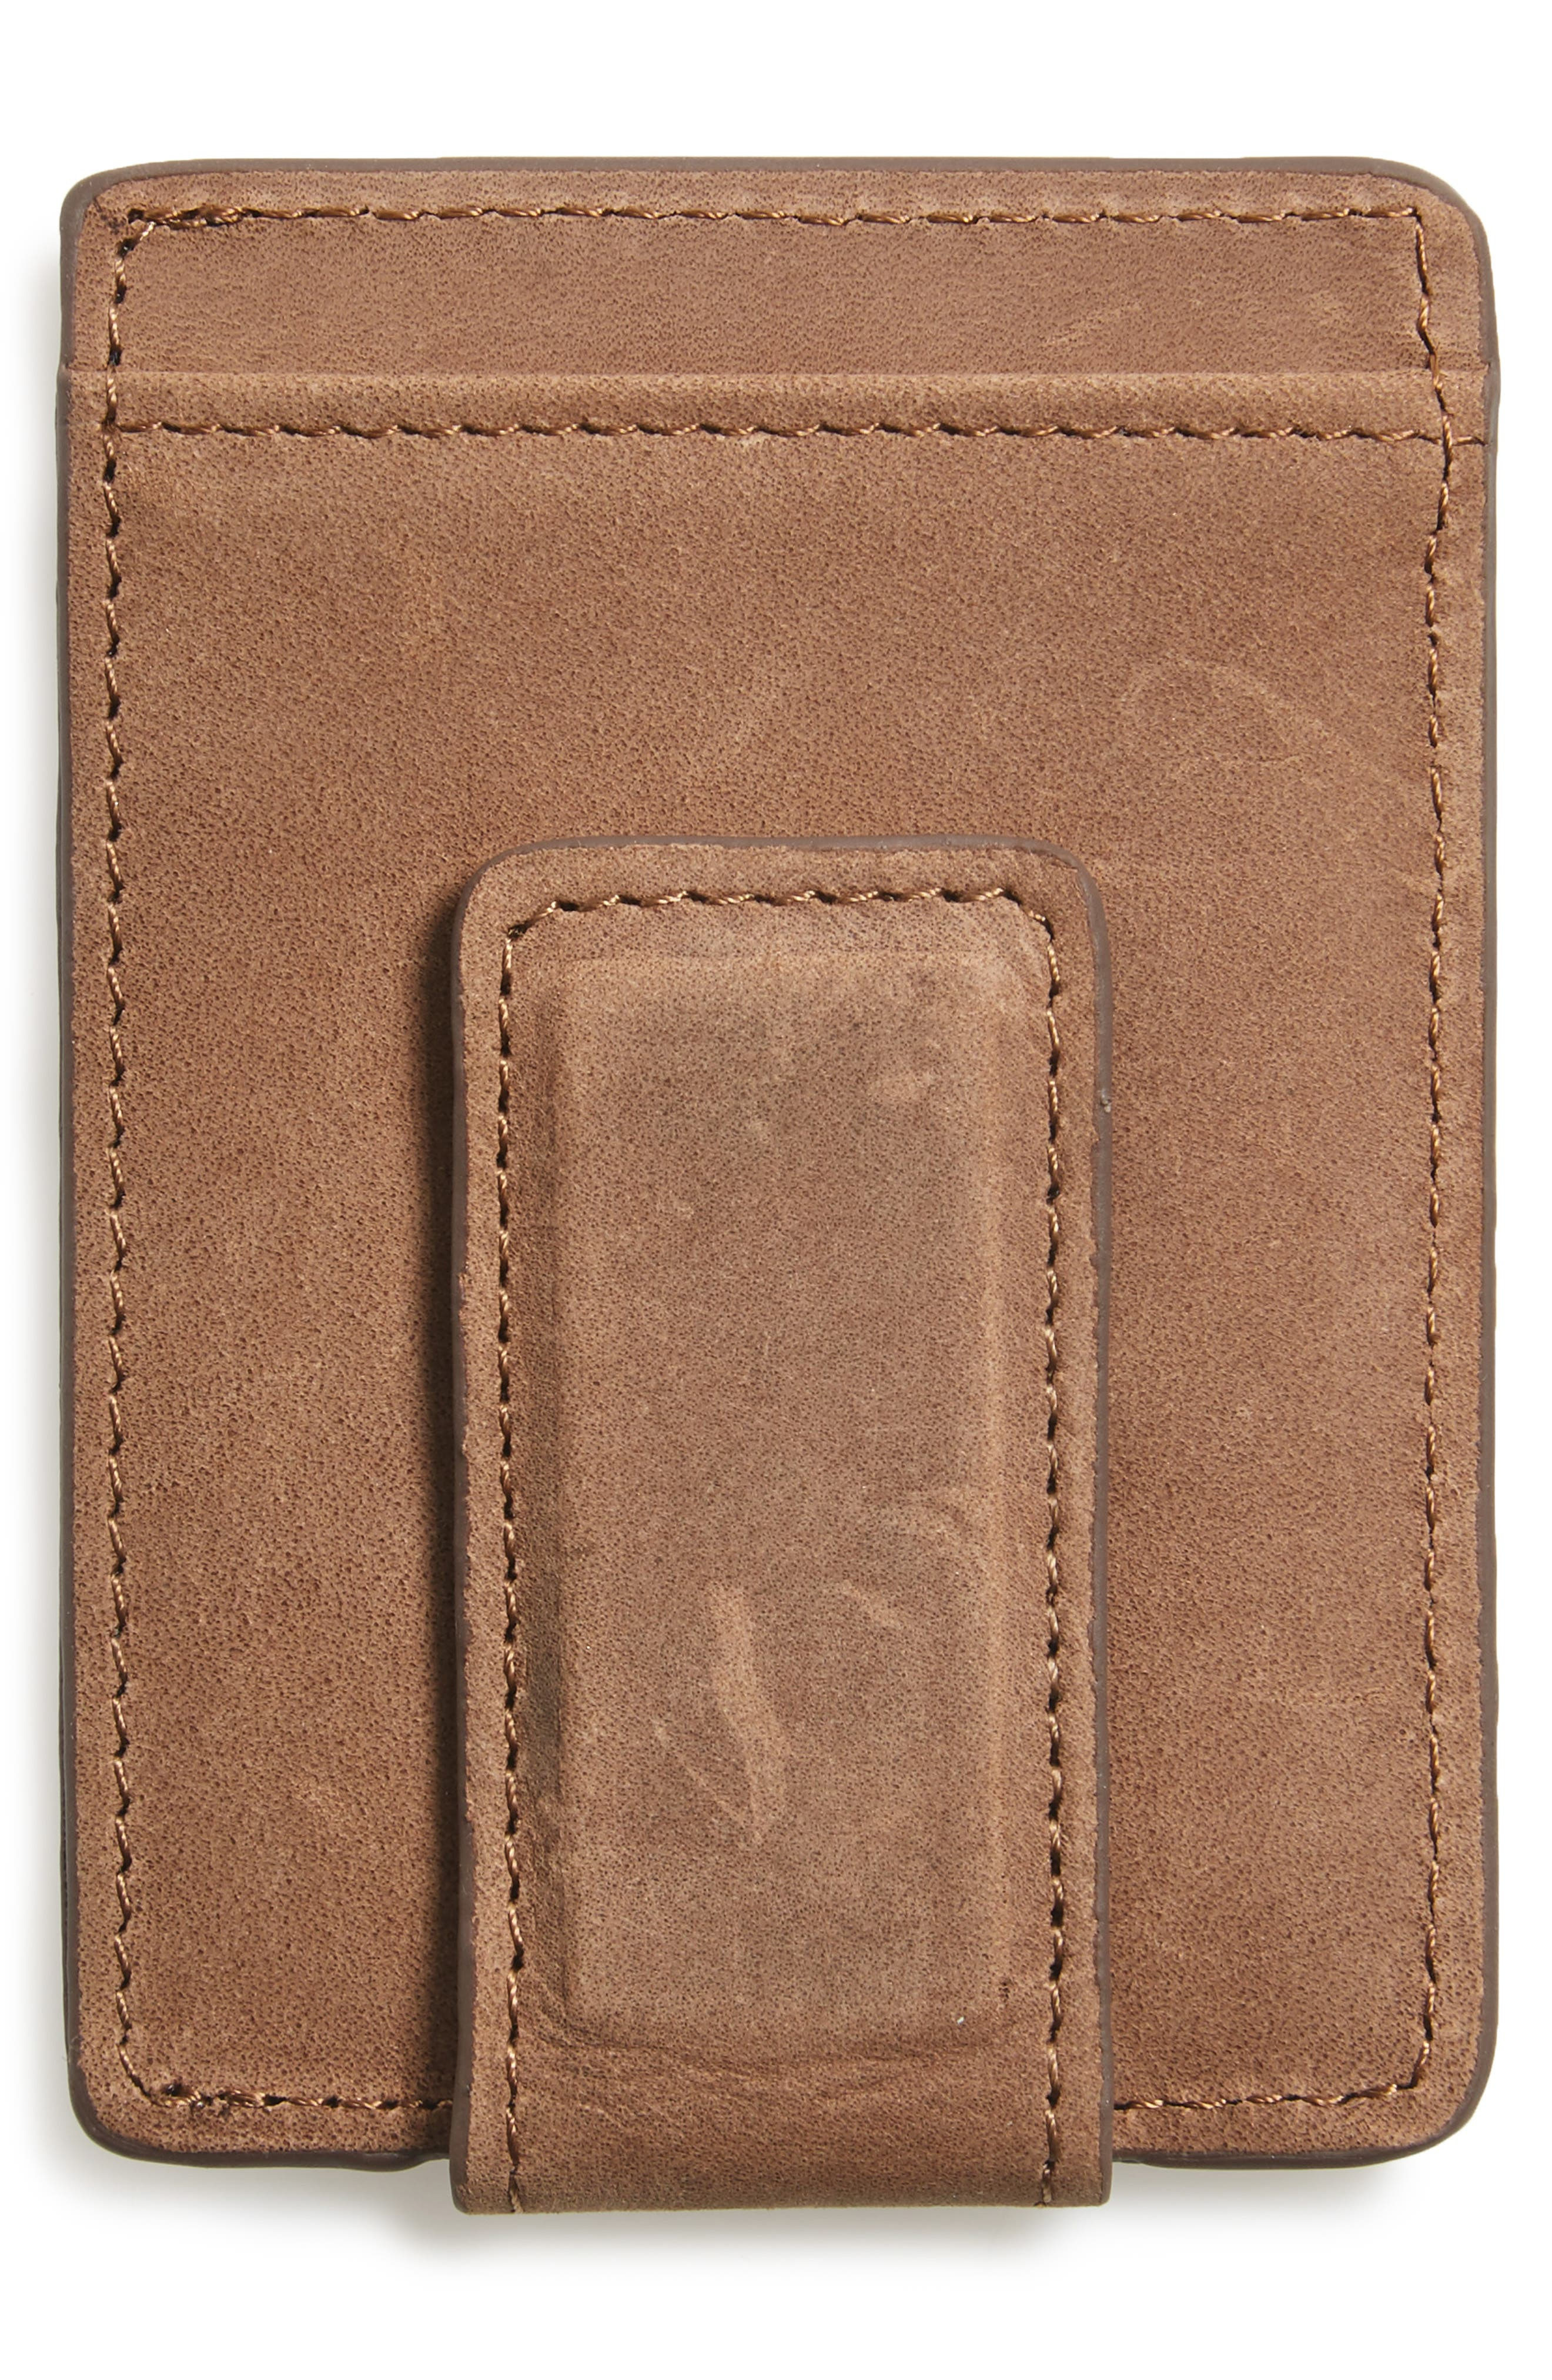 Upton Leather Money Clip Card Case,                             Alternate thumbnail 2, color,                             Brown Earth